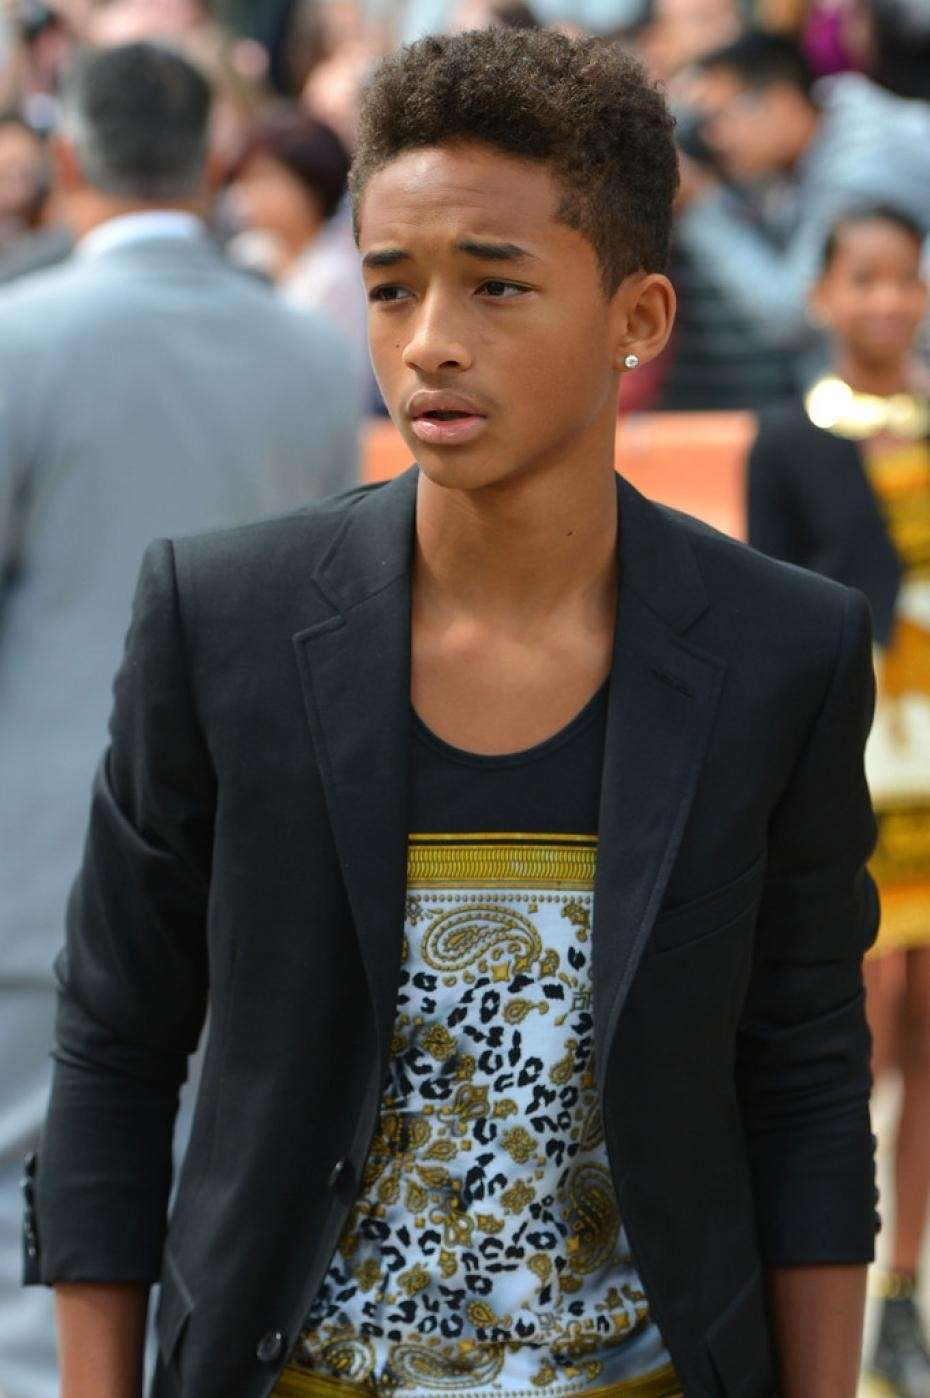 Jaden Smith sul red carpet